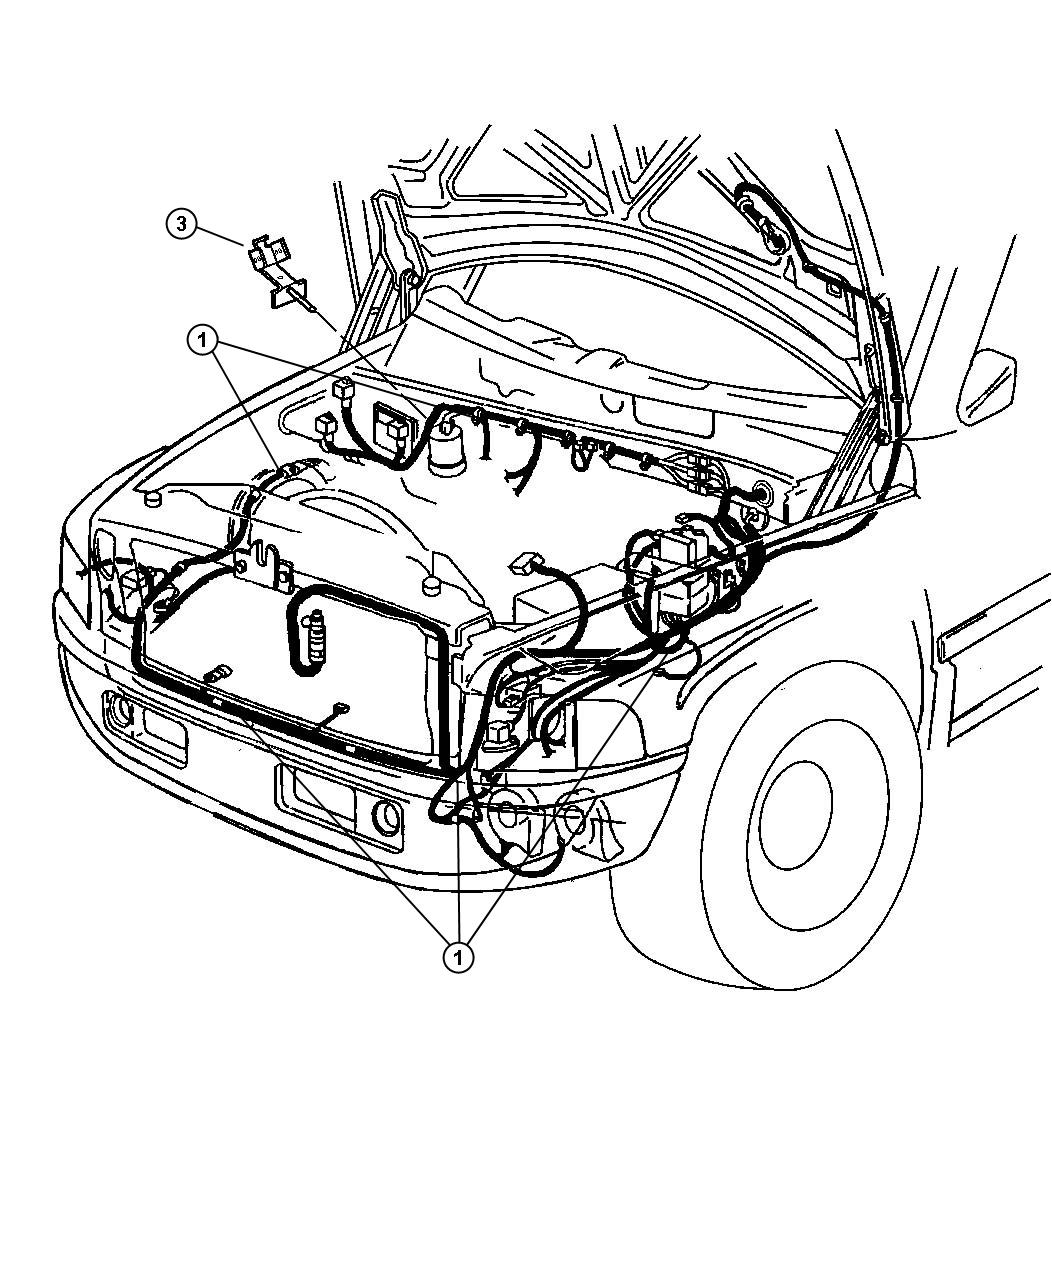 Dodge Ram Headlight Wiring Diagram